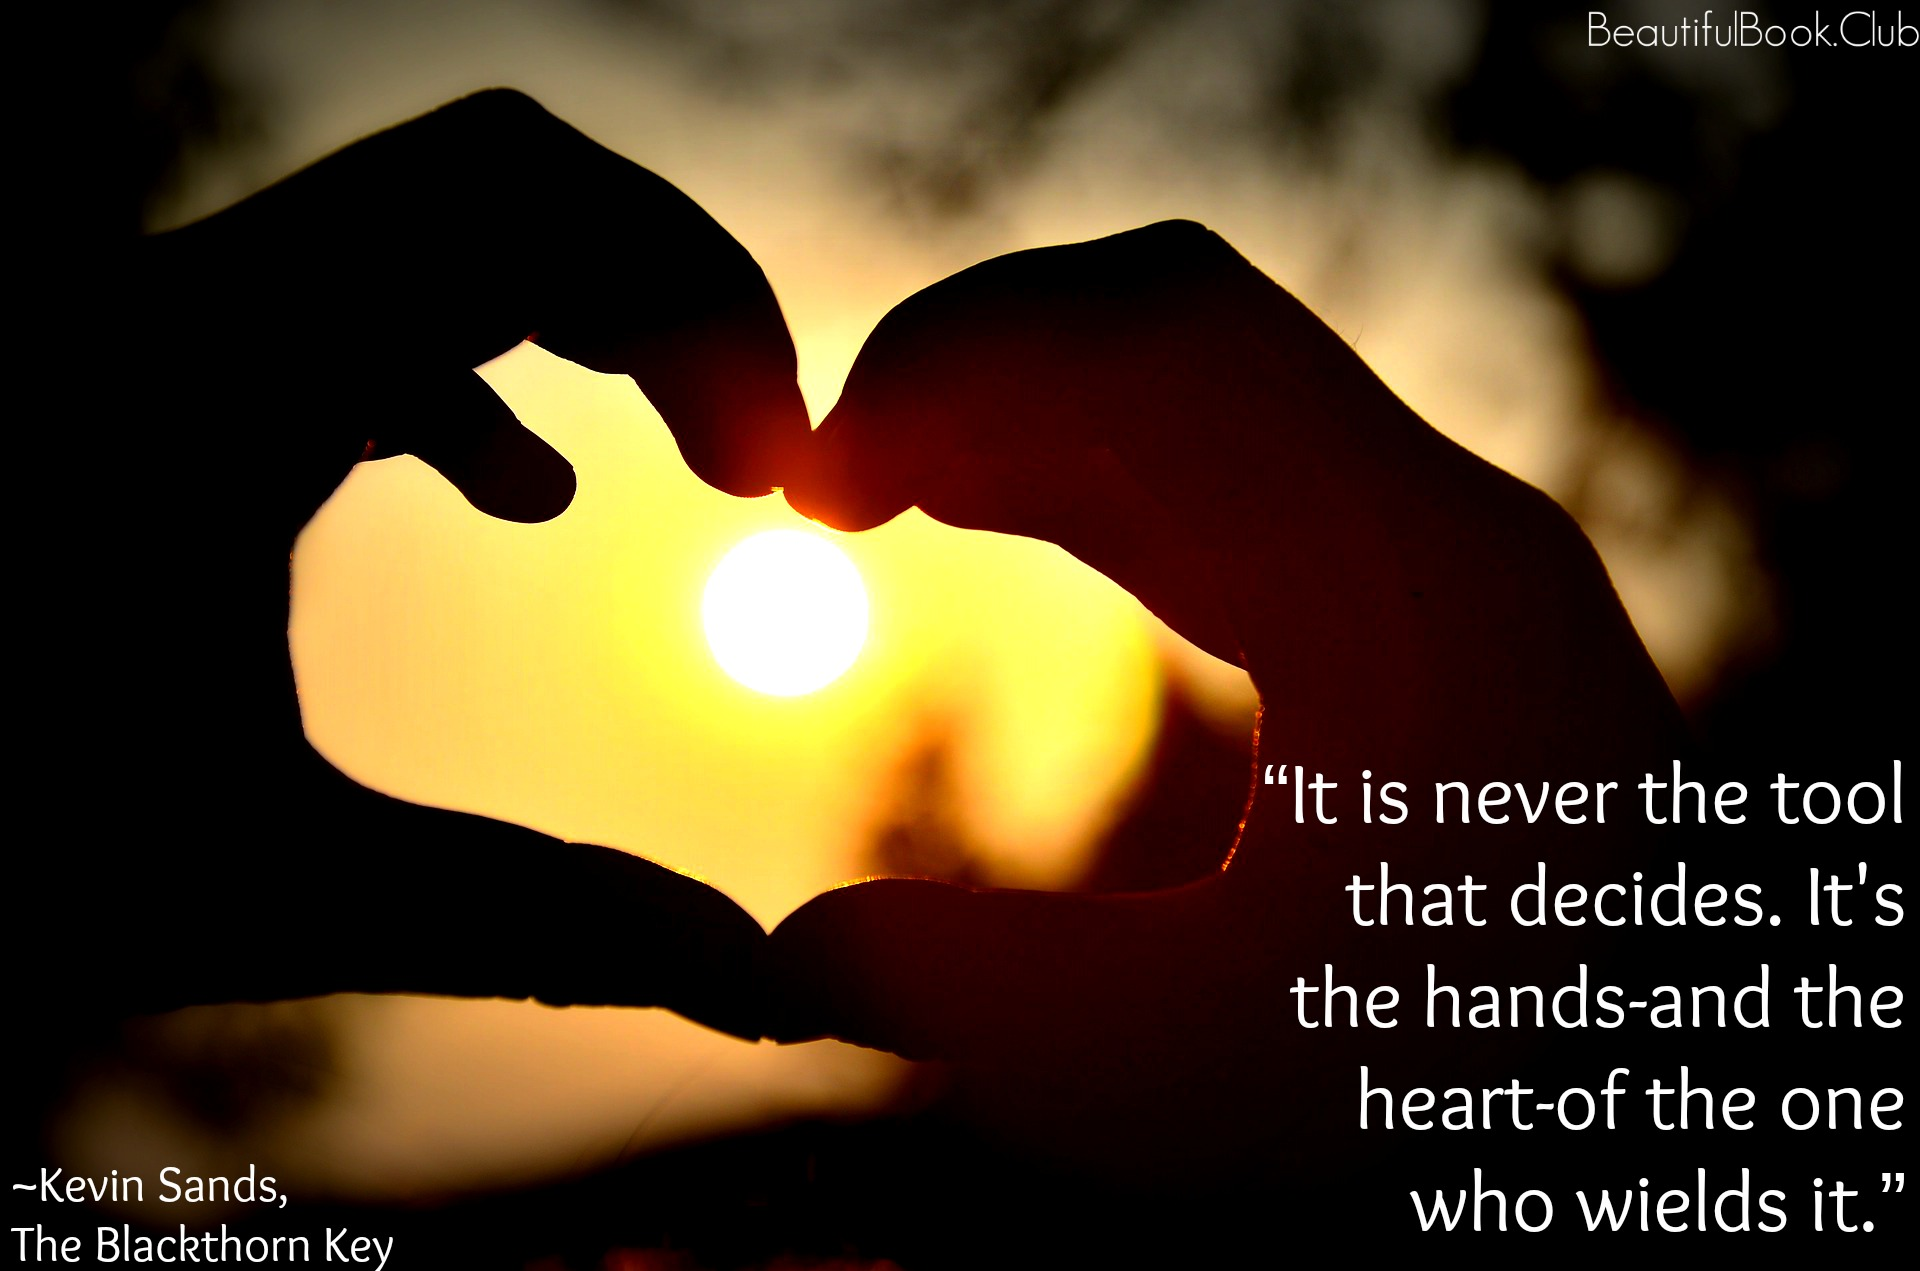 It is never the tool that decides. It's the hands-and the heart-of the ones who wields it. _Kevin Sands, The Blackthorn Key quote